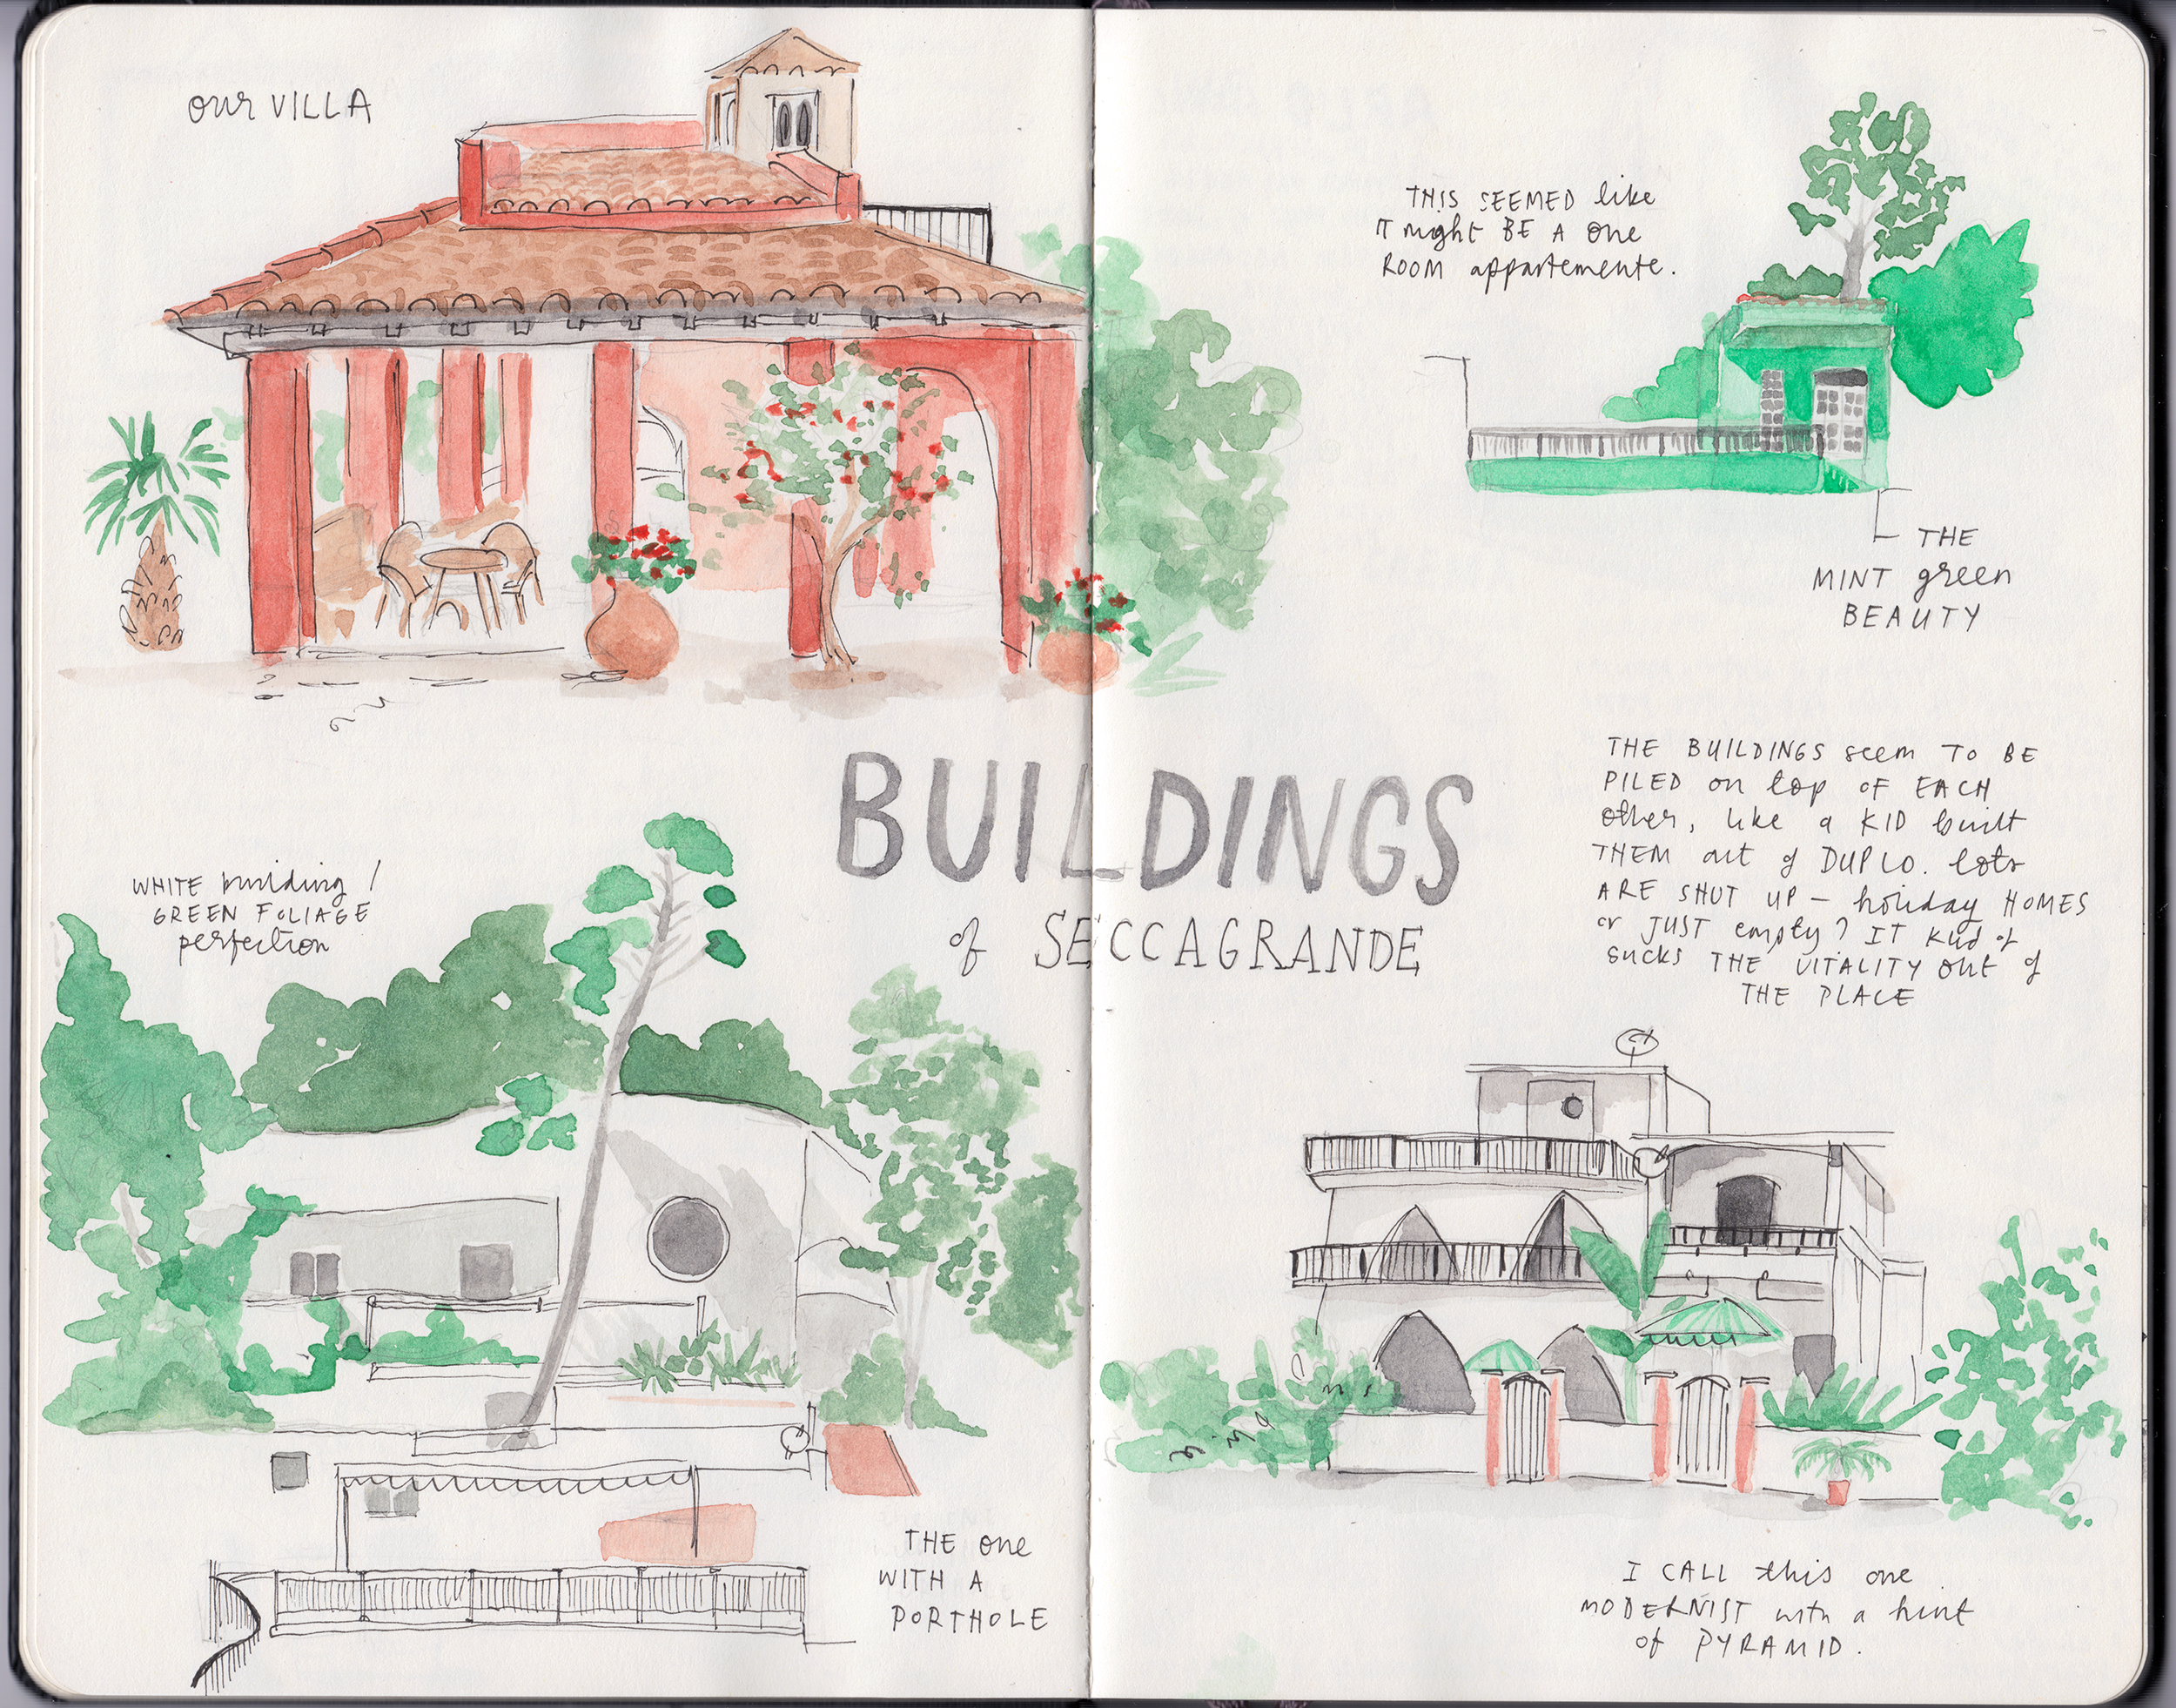 Illustrated journal of Sicily 3